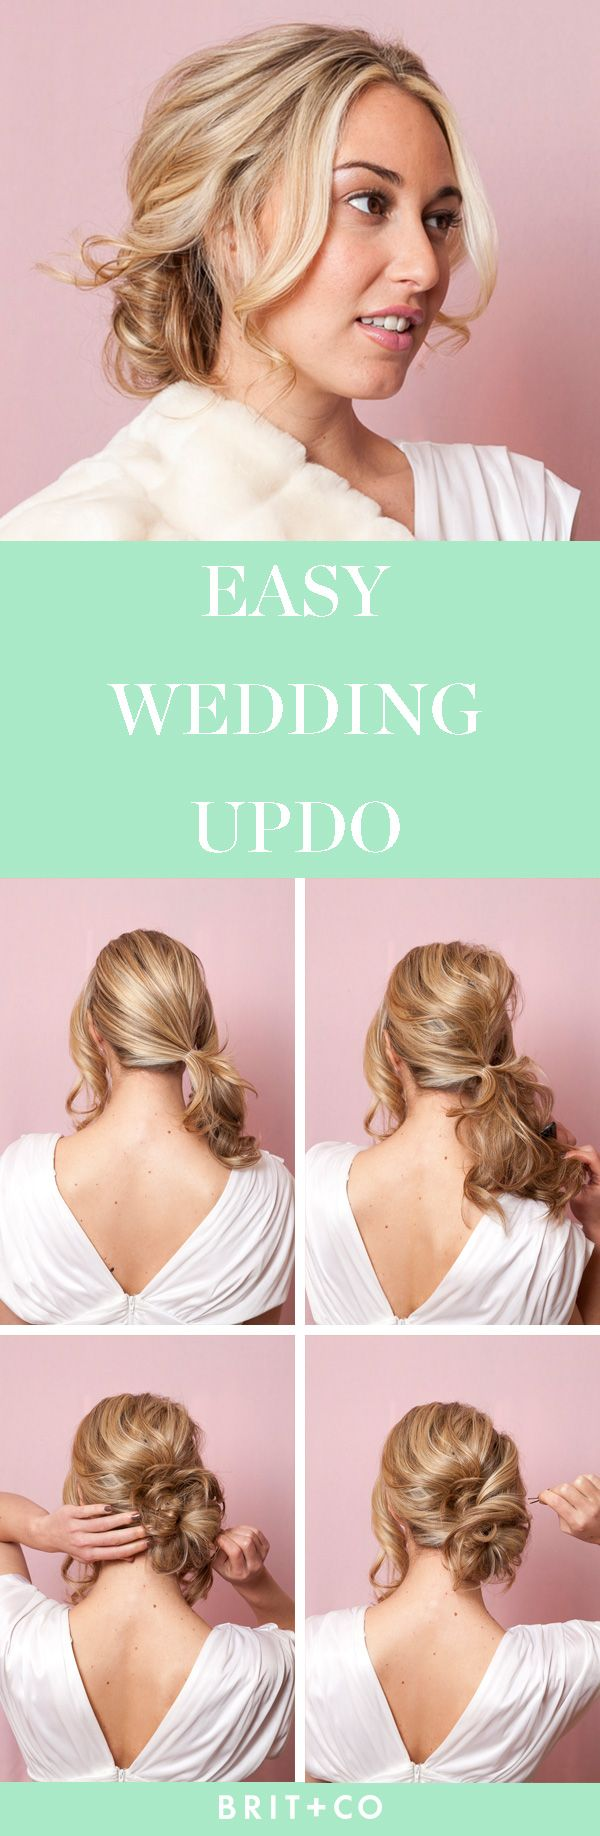 best 25+ wedding updo tutorial ideas on pinterest | easy wedding